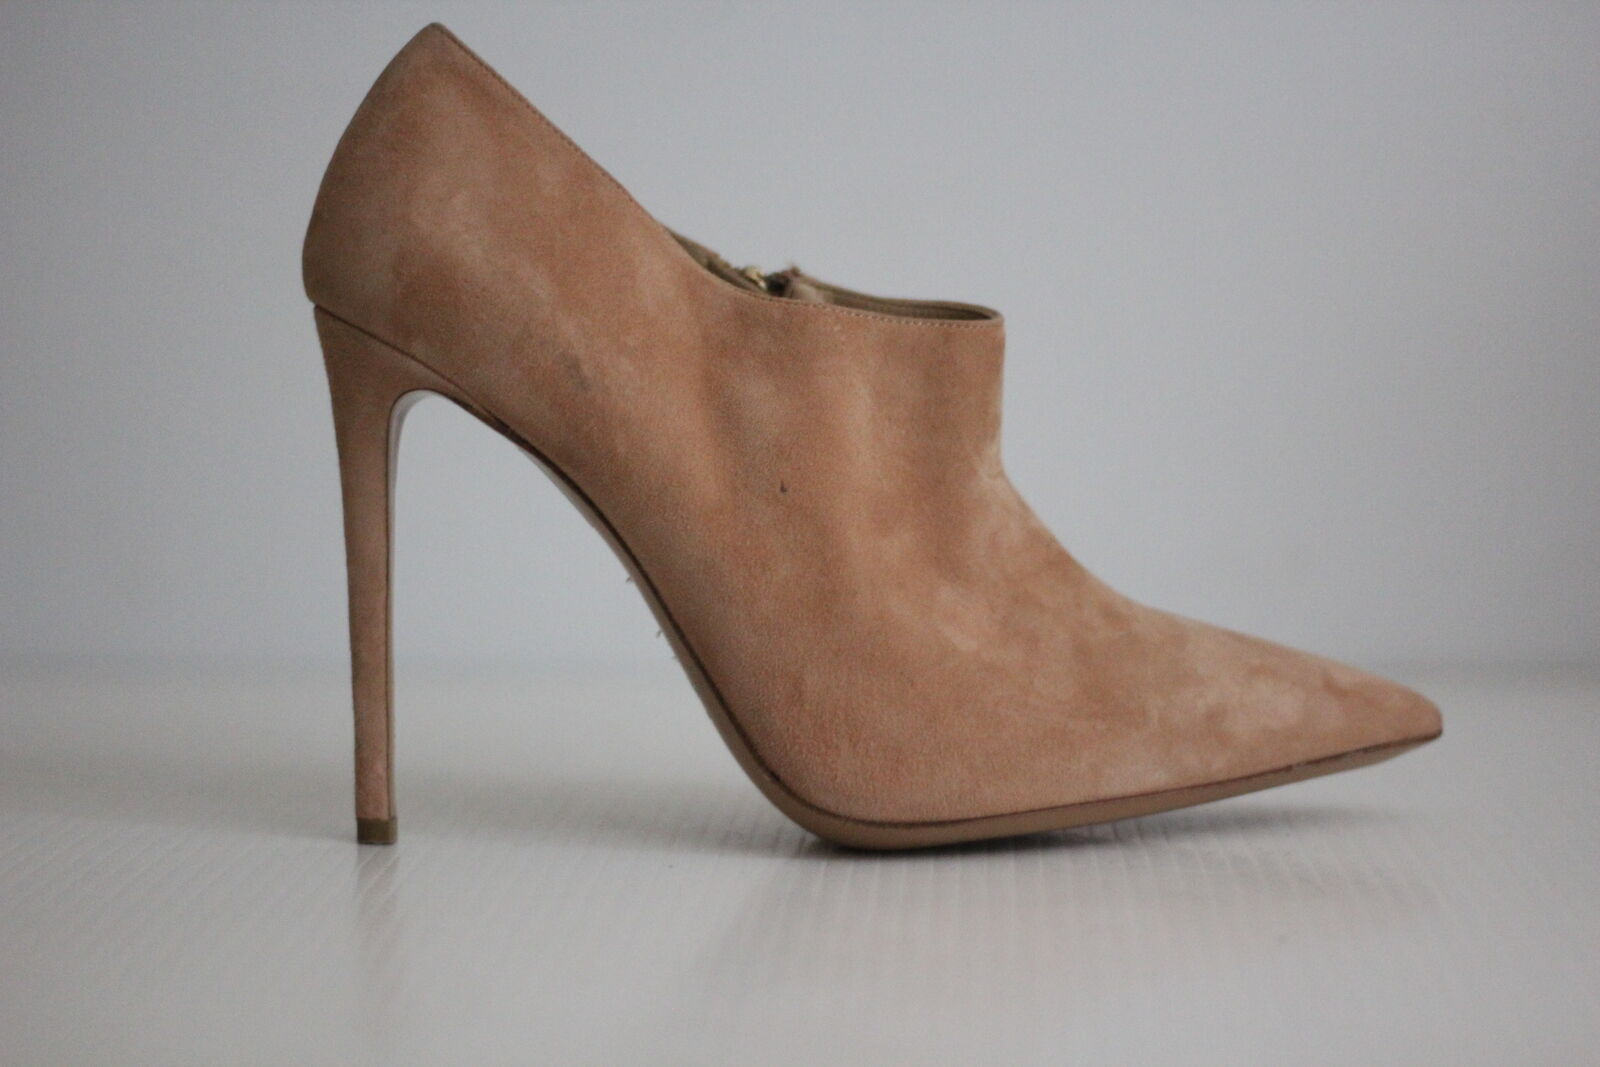 NEW Bruno Magli Alma Suede Ankle Boot Boot Boot - Nude Suede - Size 11.5 US   41.5  (X74) 09bd96